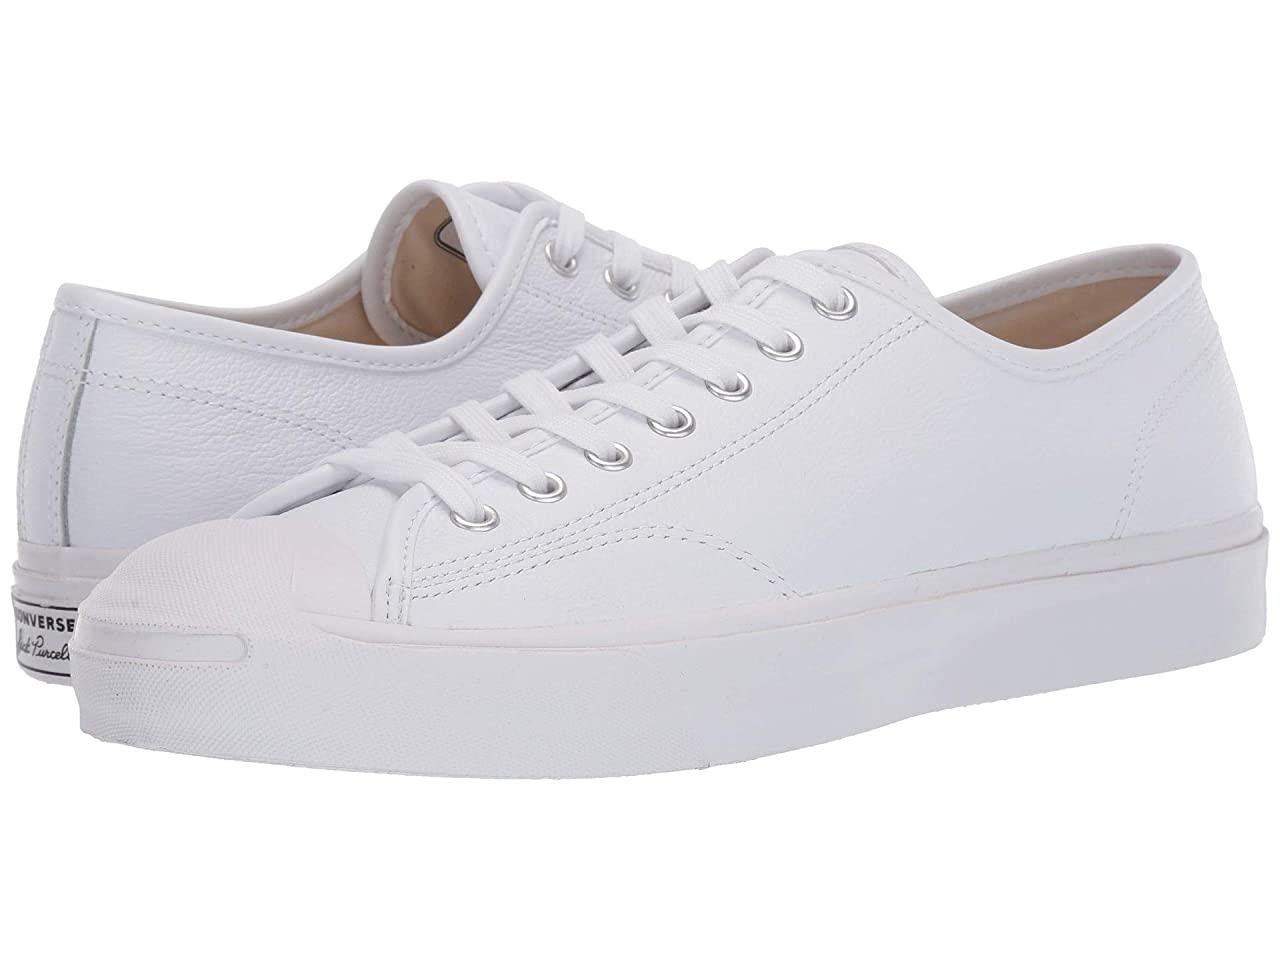 Кроссовки/Кеды (Оригинал) Converse Jack Purcell Gold Standard Leather White/White/White